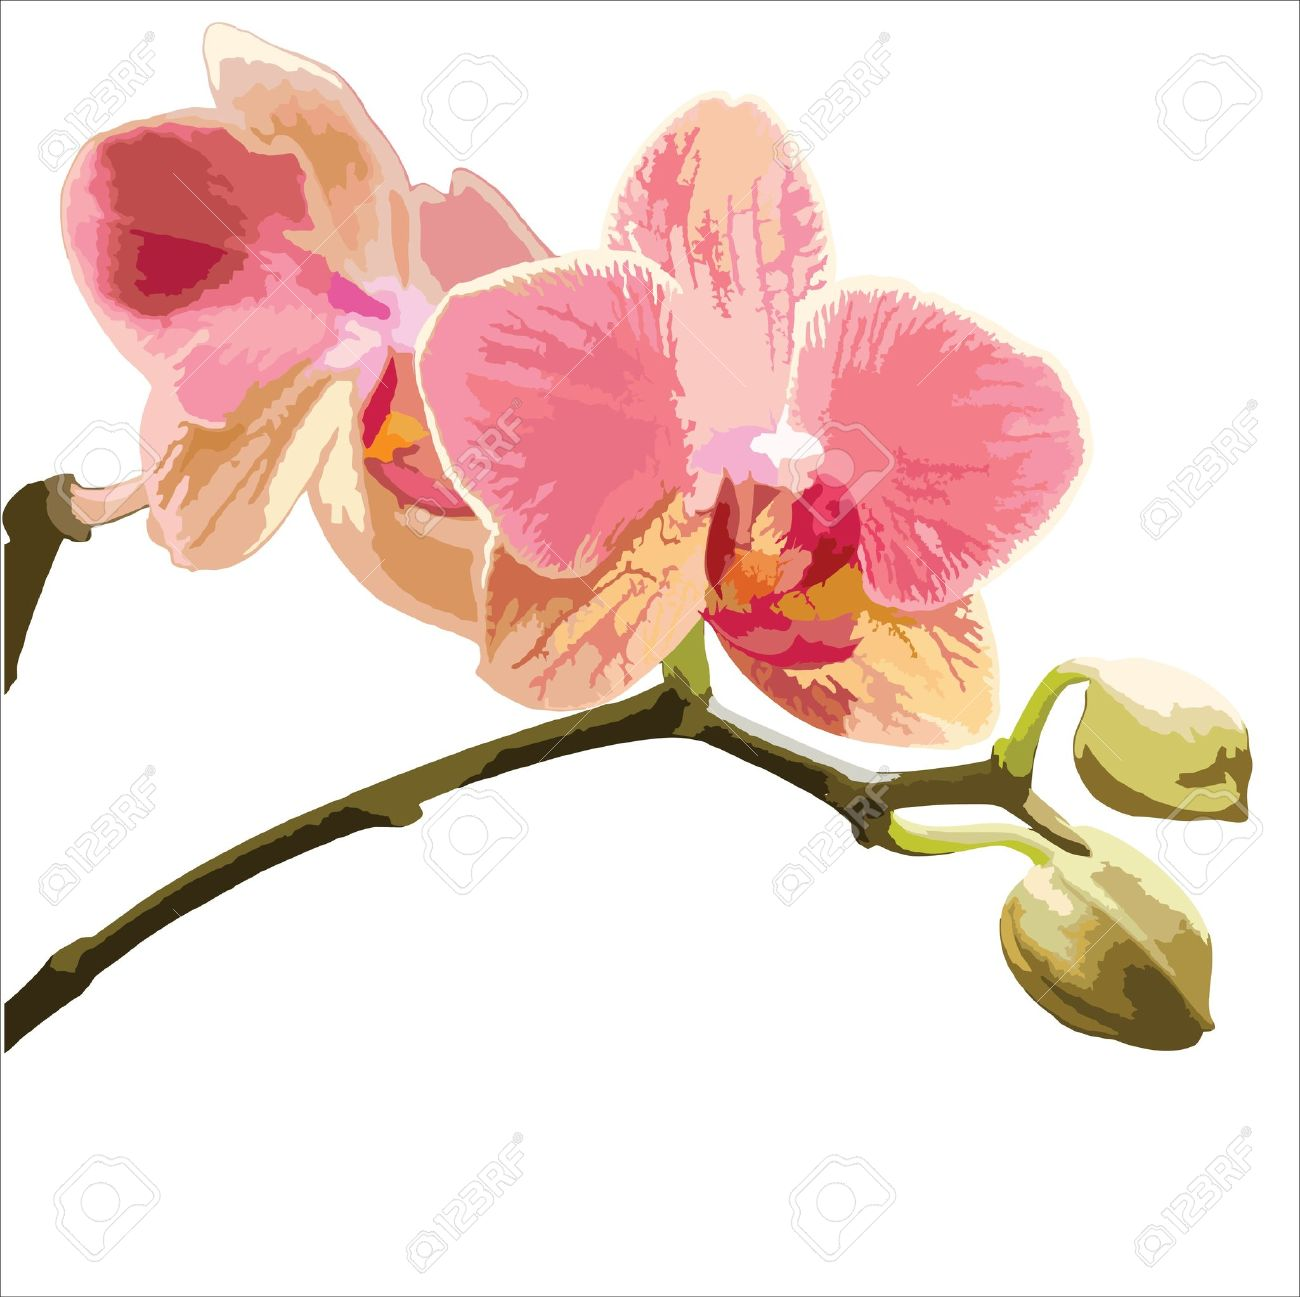 Vector Illustration Of A Phalaenopsis Orchid On White Background.